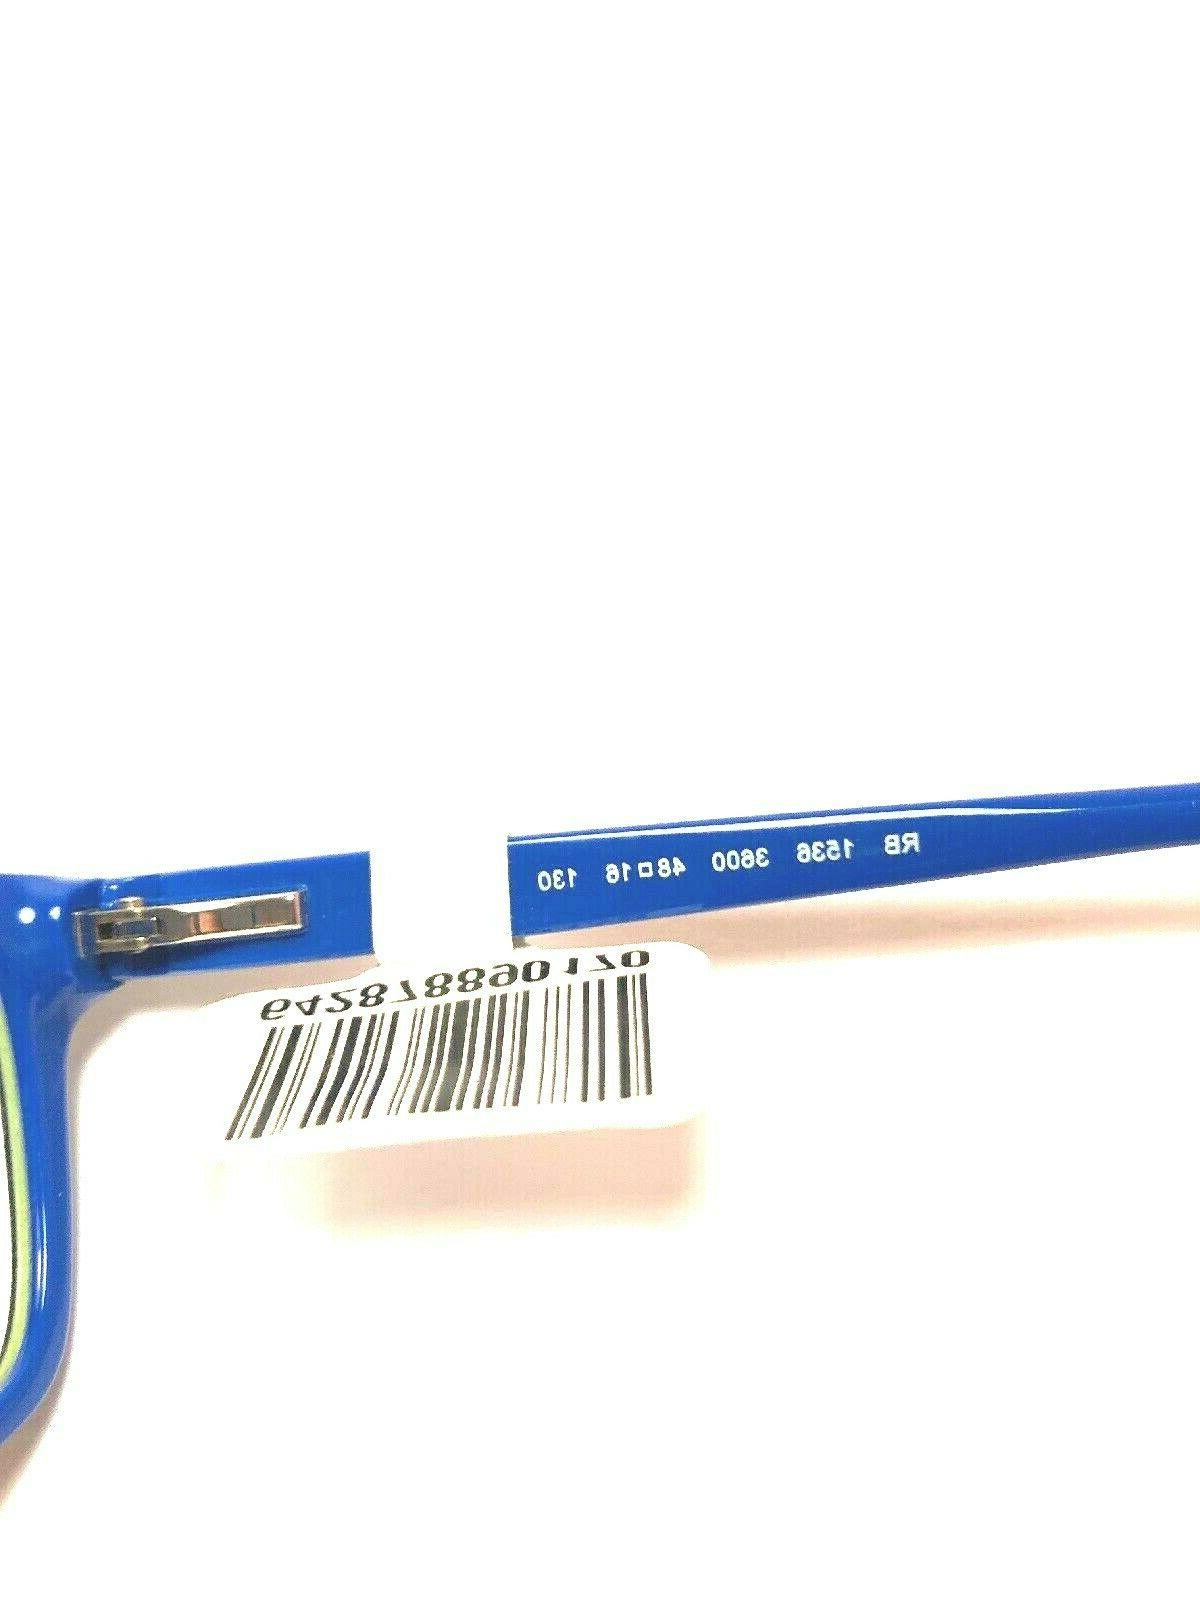 NEW Ray Ban 1536 130 Kids Eyeglasses/Frames 5B